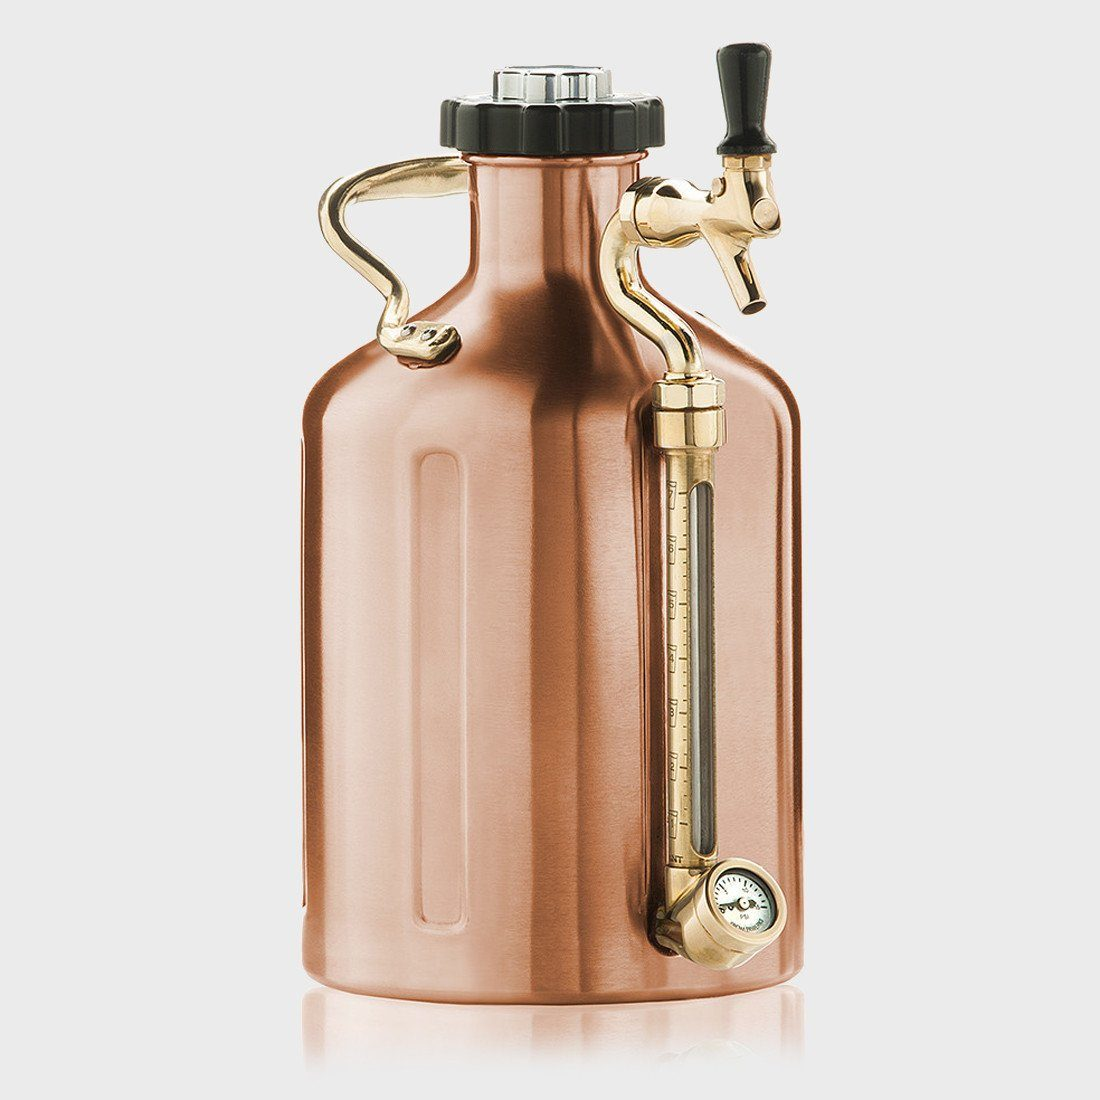 Growlerwerks Ukeg 128 Copper